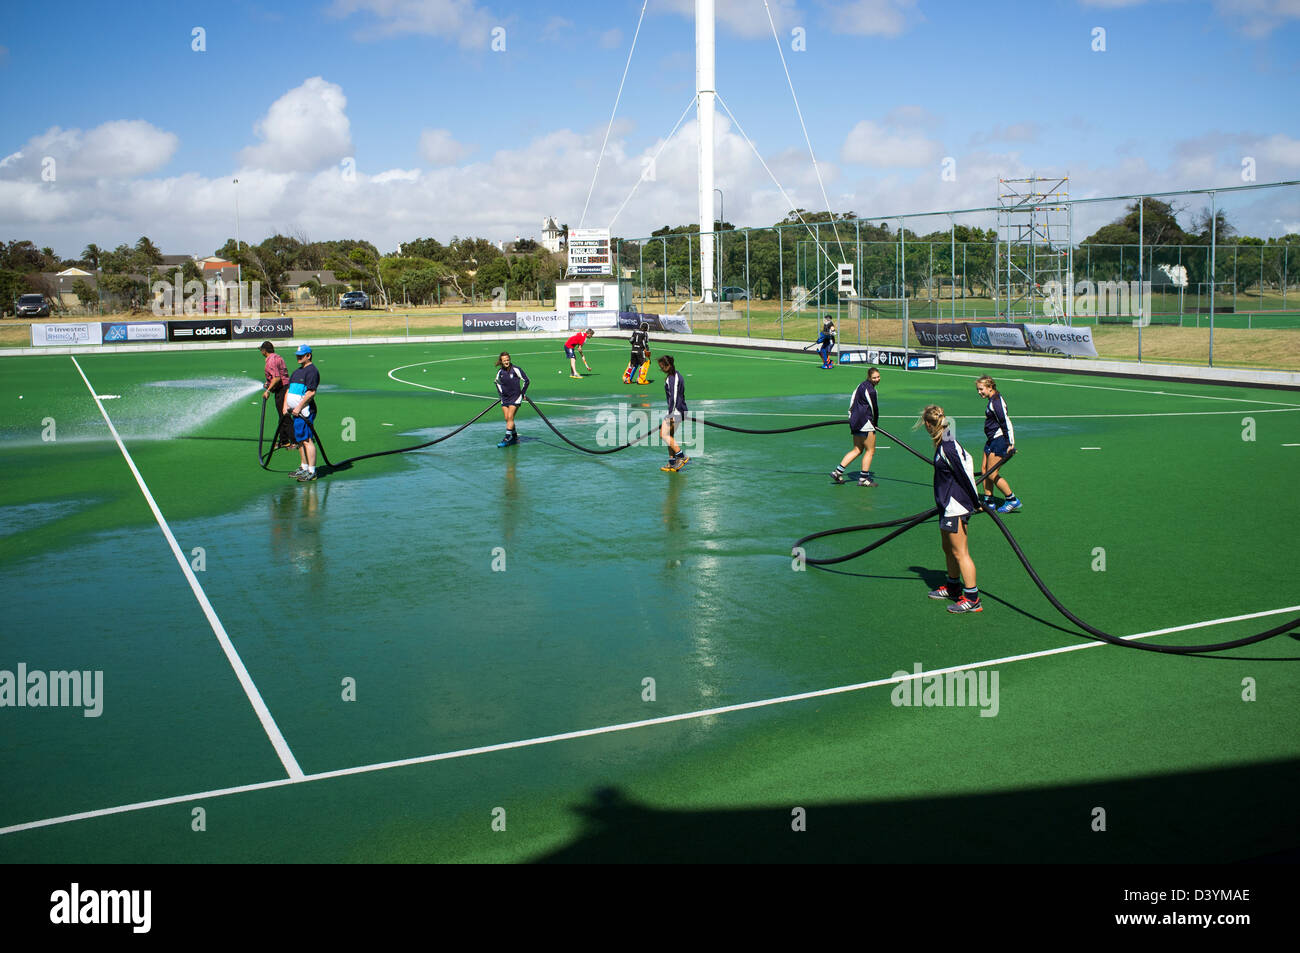 Hockey Ground High Resolution Stock Photography And Images Alamy